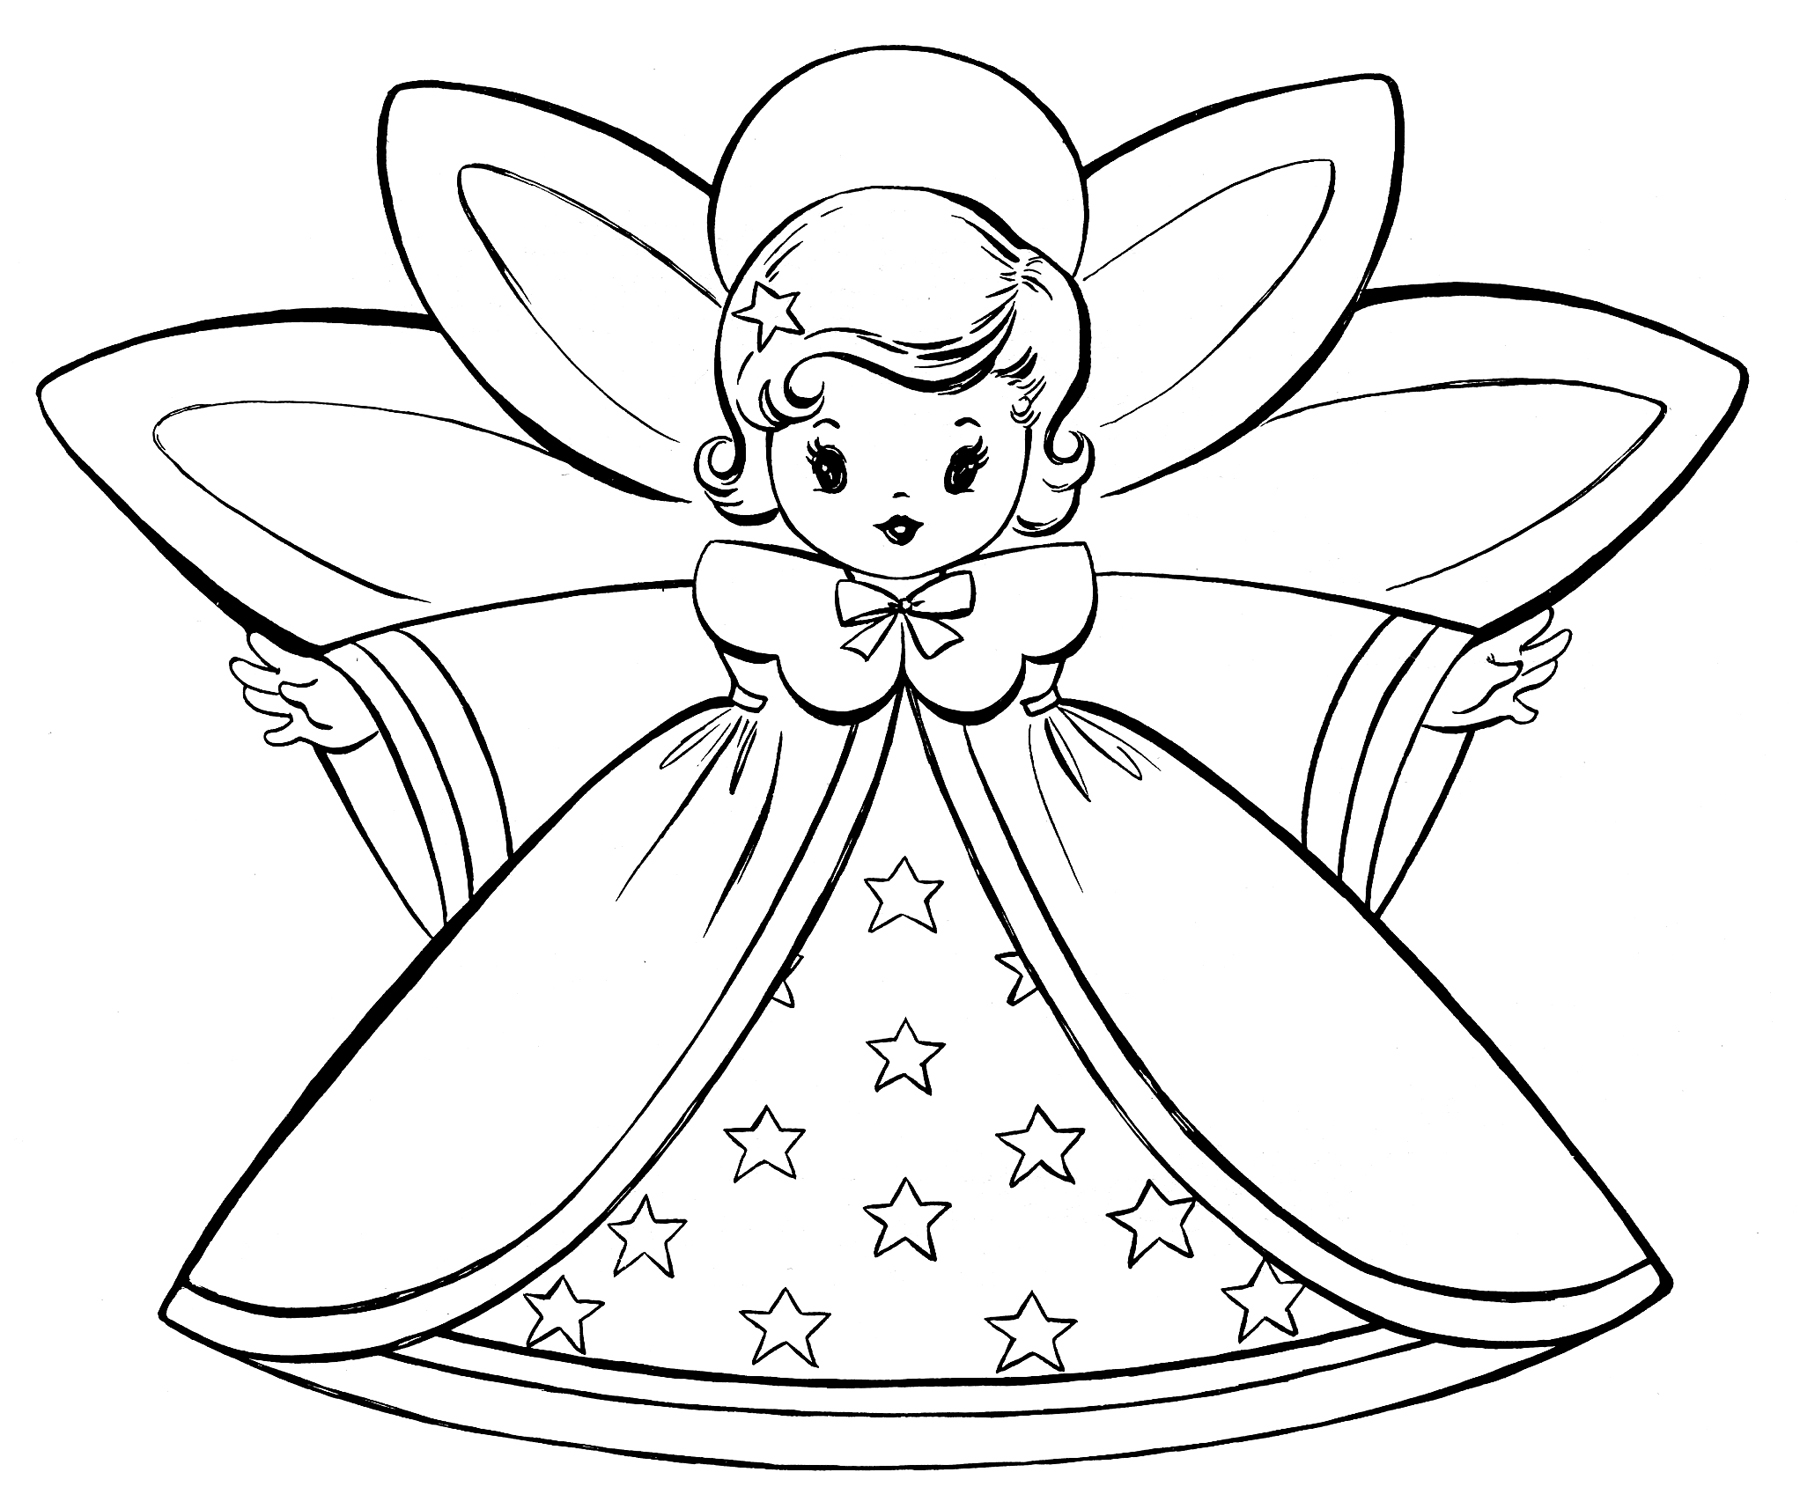 free christmas coloring pages - Coloring Paper